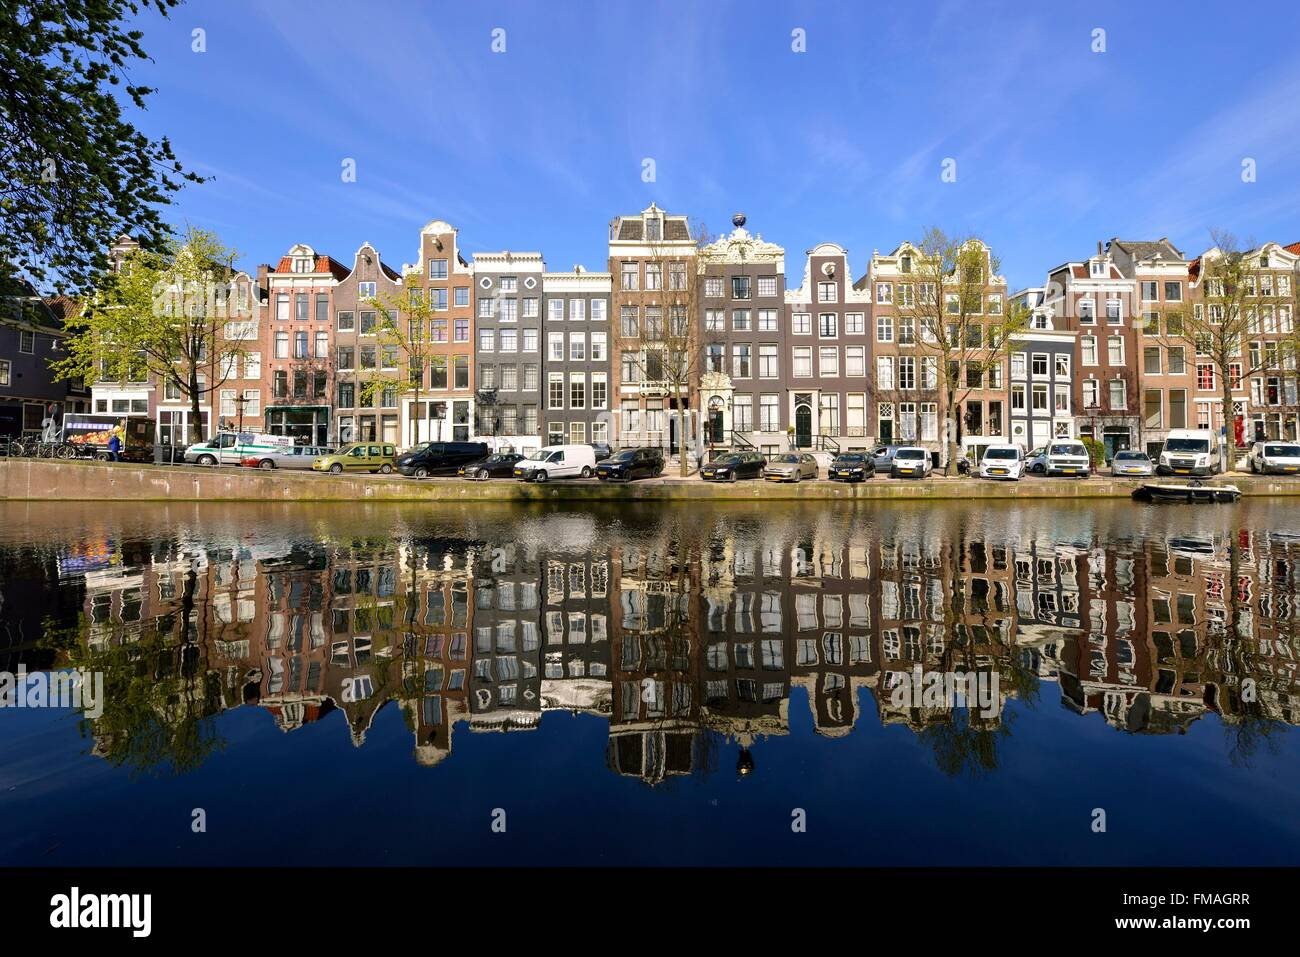 Netherlands, Northen Holland, Amsterdam, 17th century canal ring area, listed as World Heritage by UNESCO, Singel - Stock Image